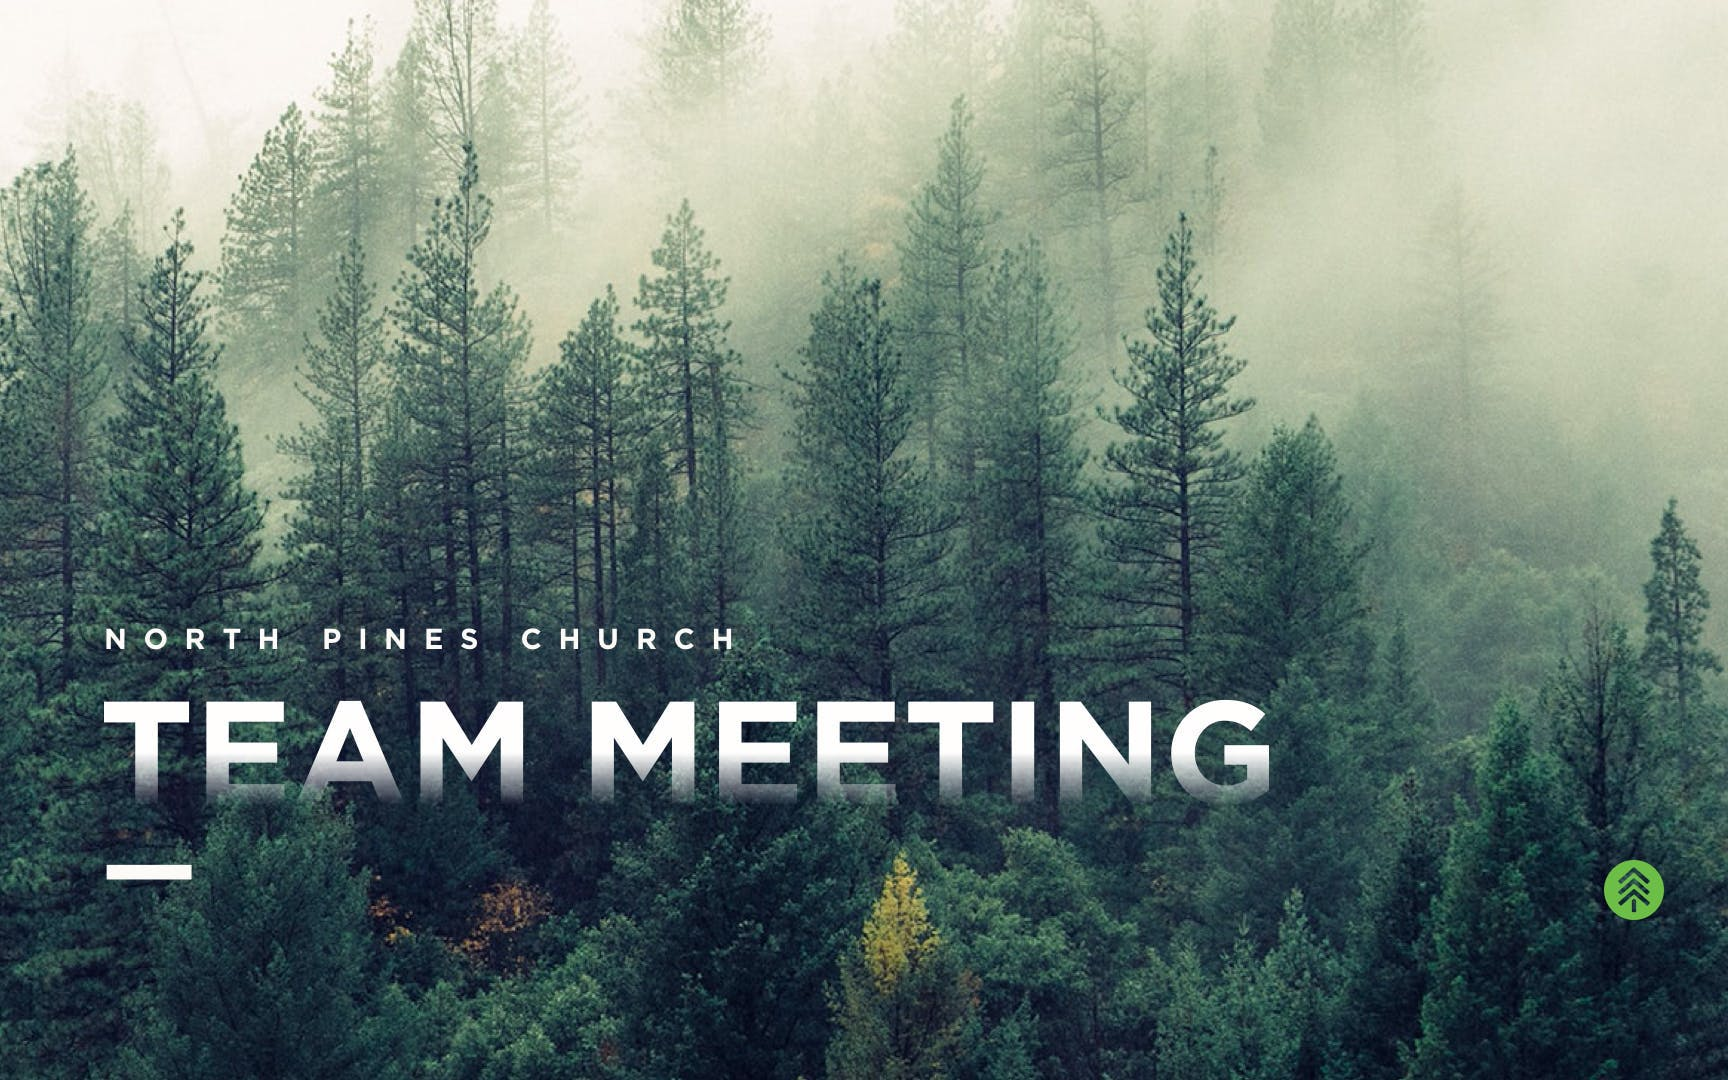 Pine tree forest with Team Meeting overlay.